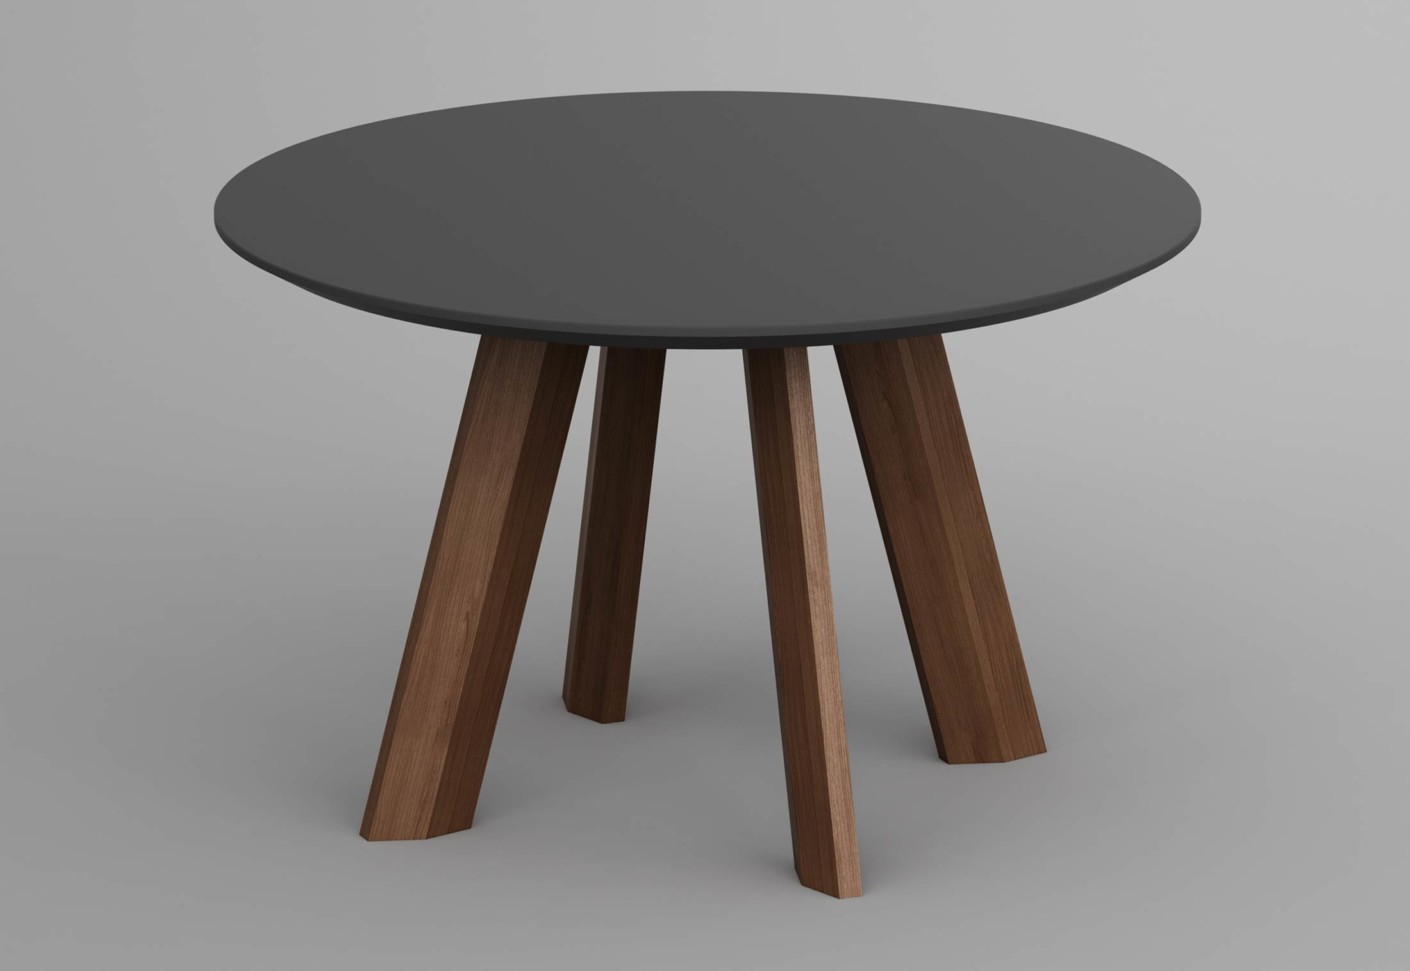 Rhombi tisch rund von vitamin design stylepark for Round centre table designs